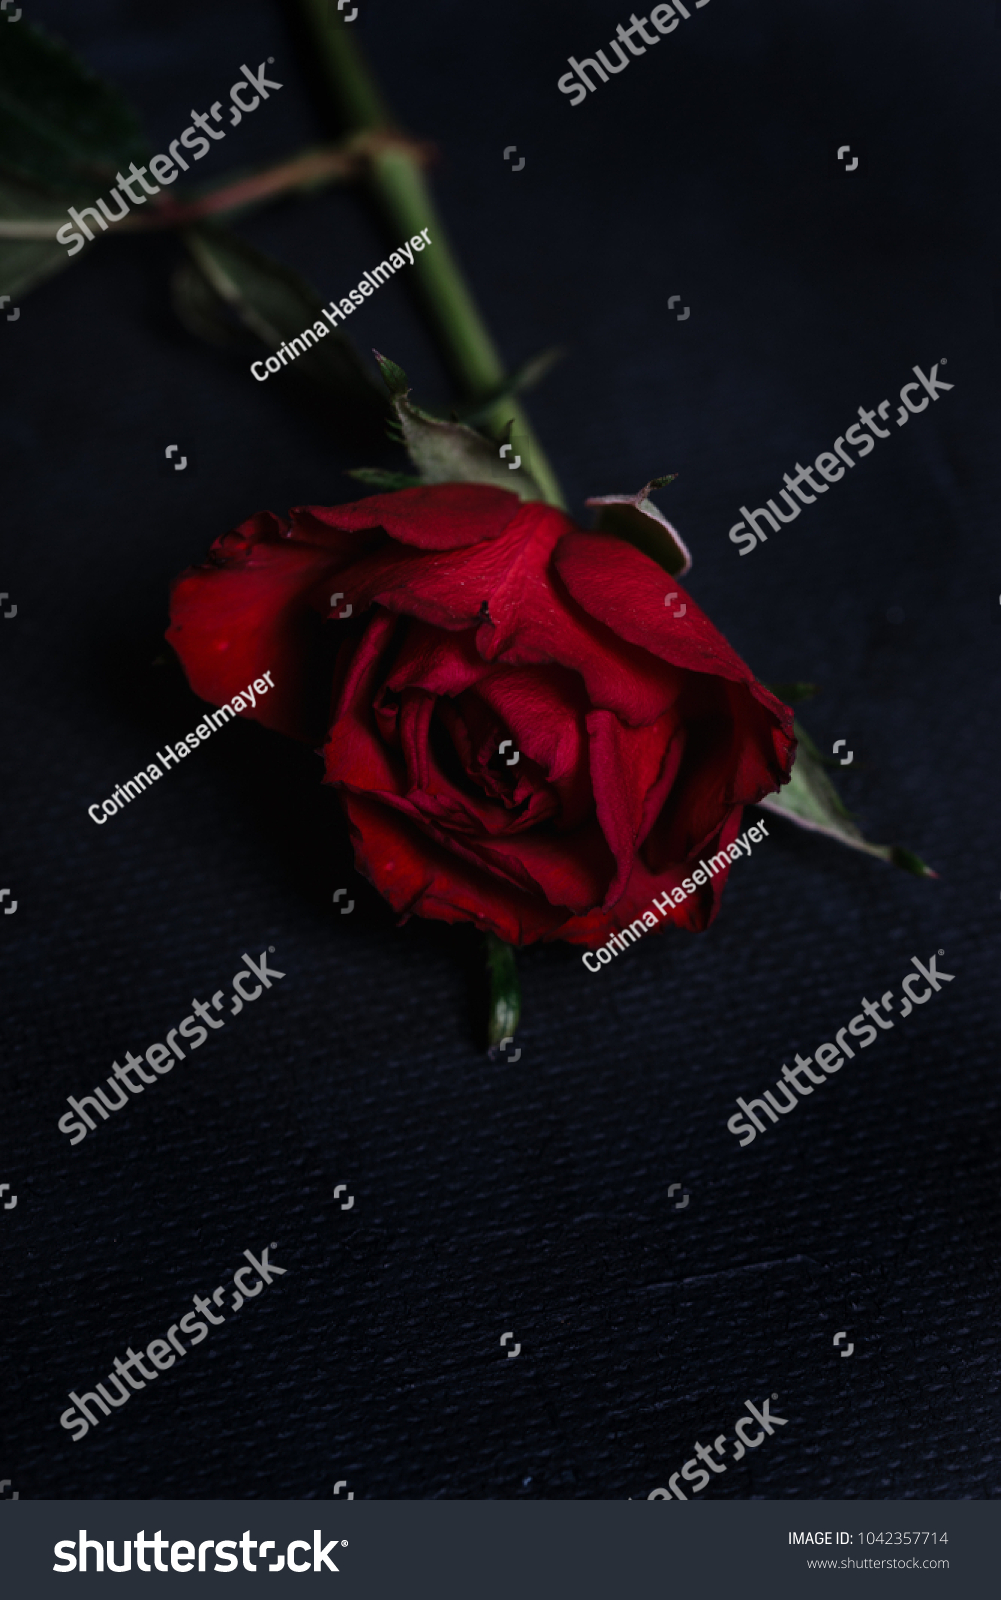 Single red rose with dark tones and